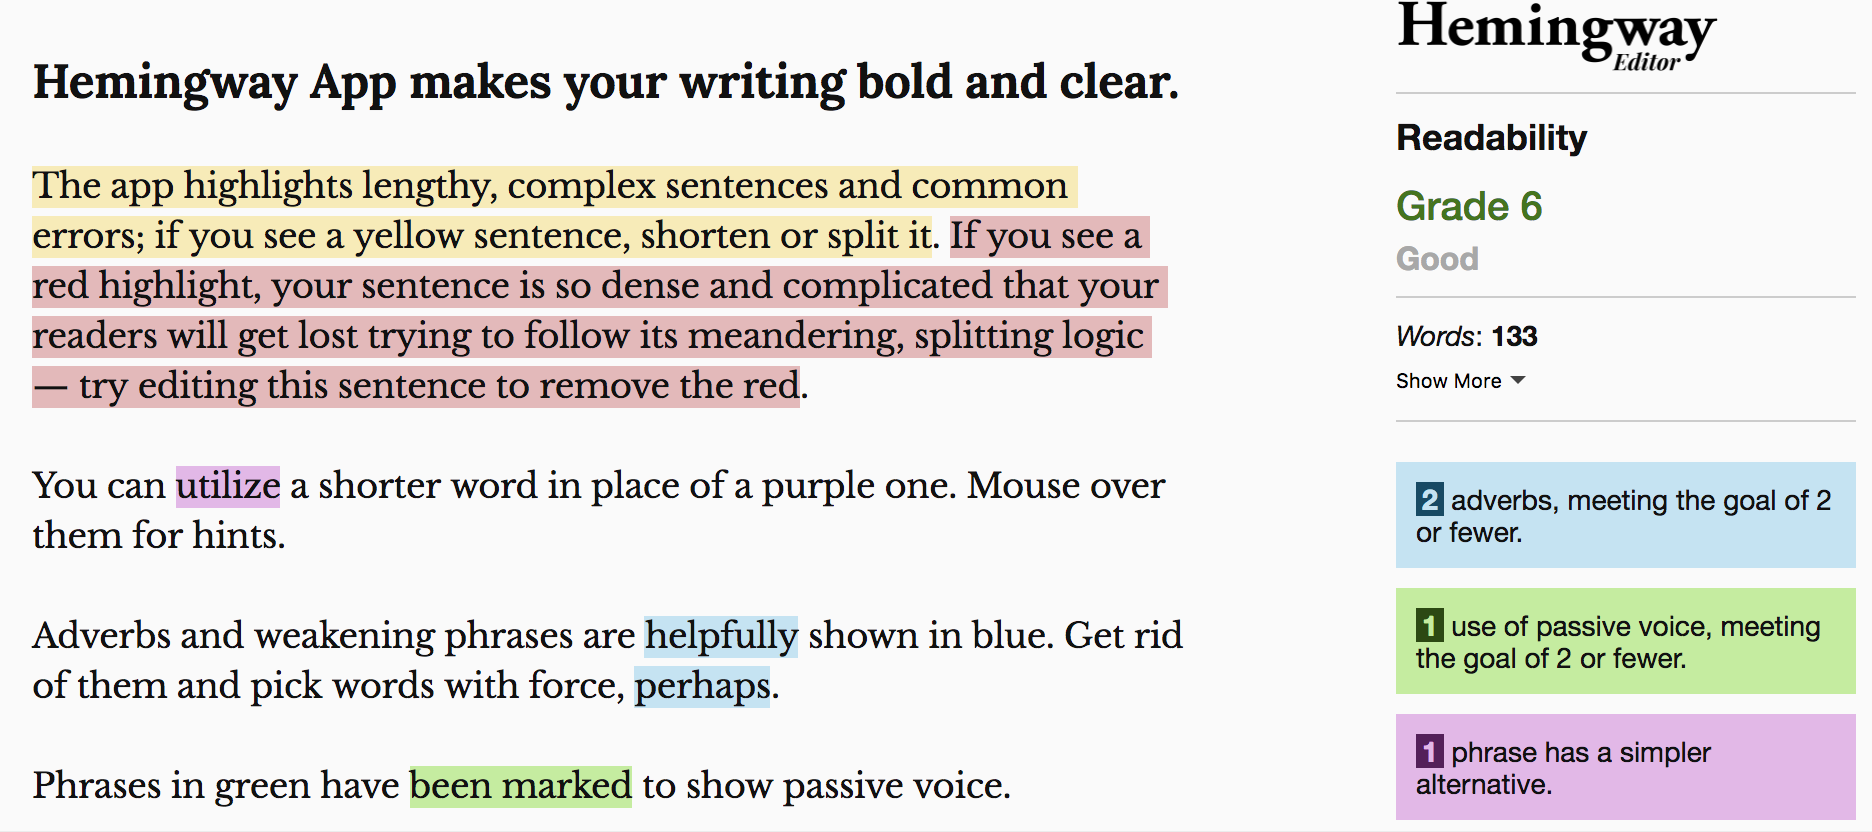 Hemingway – a great web-based tool to help improve your writing